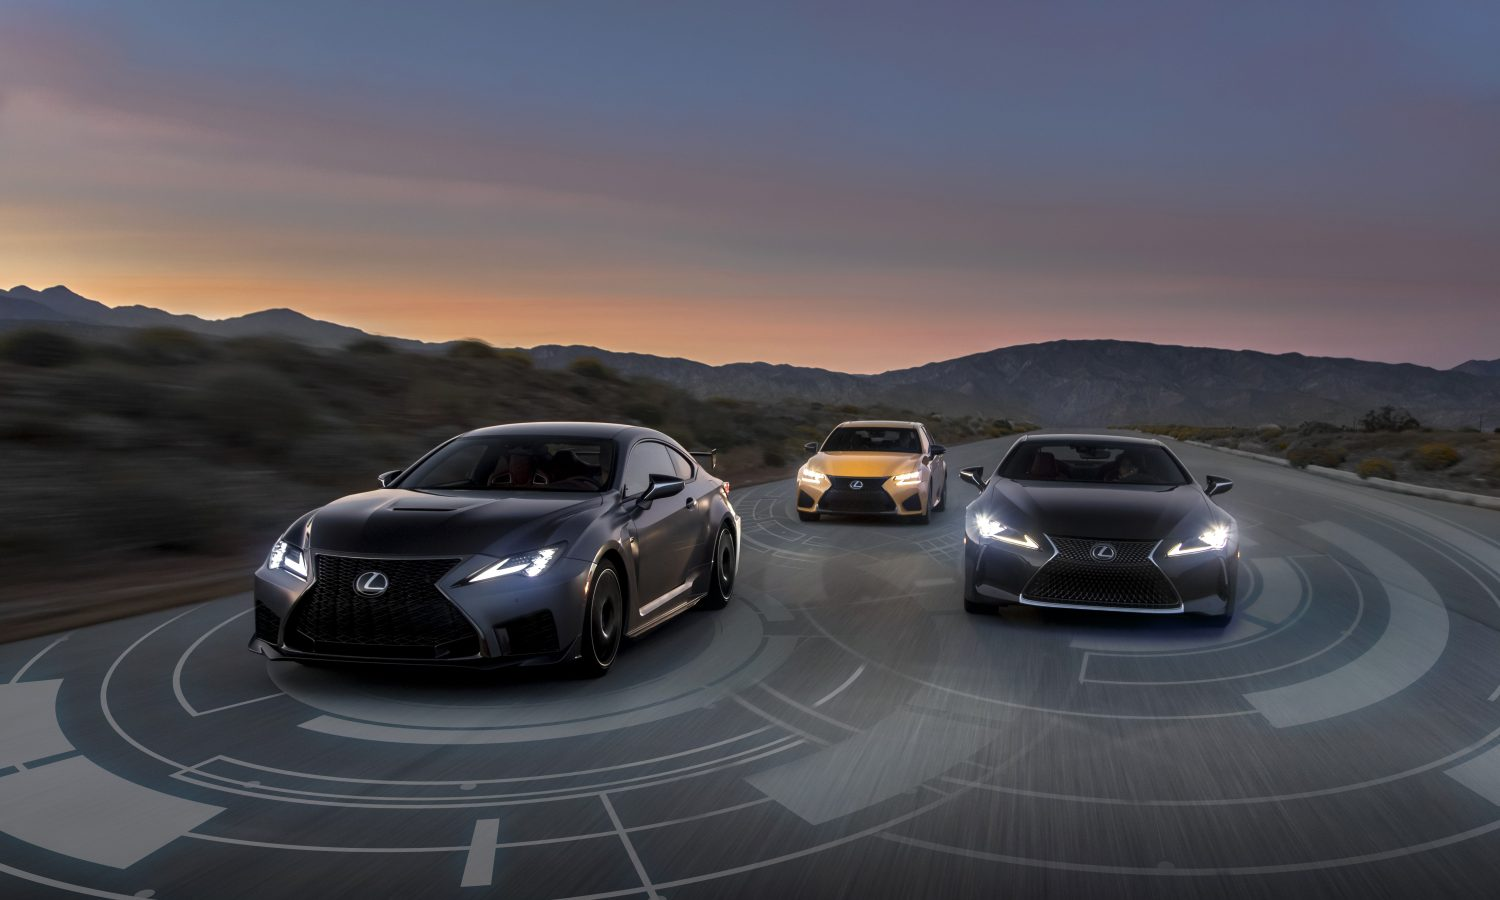 Lexus Moves One Step Closer to a World Without Crashes